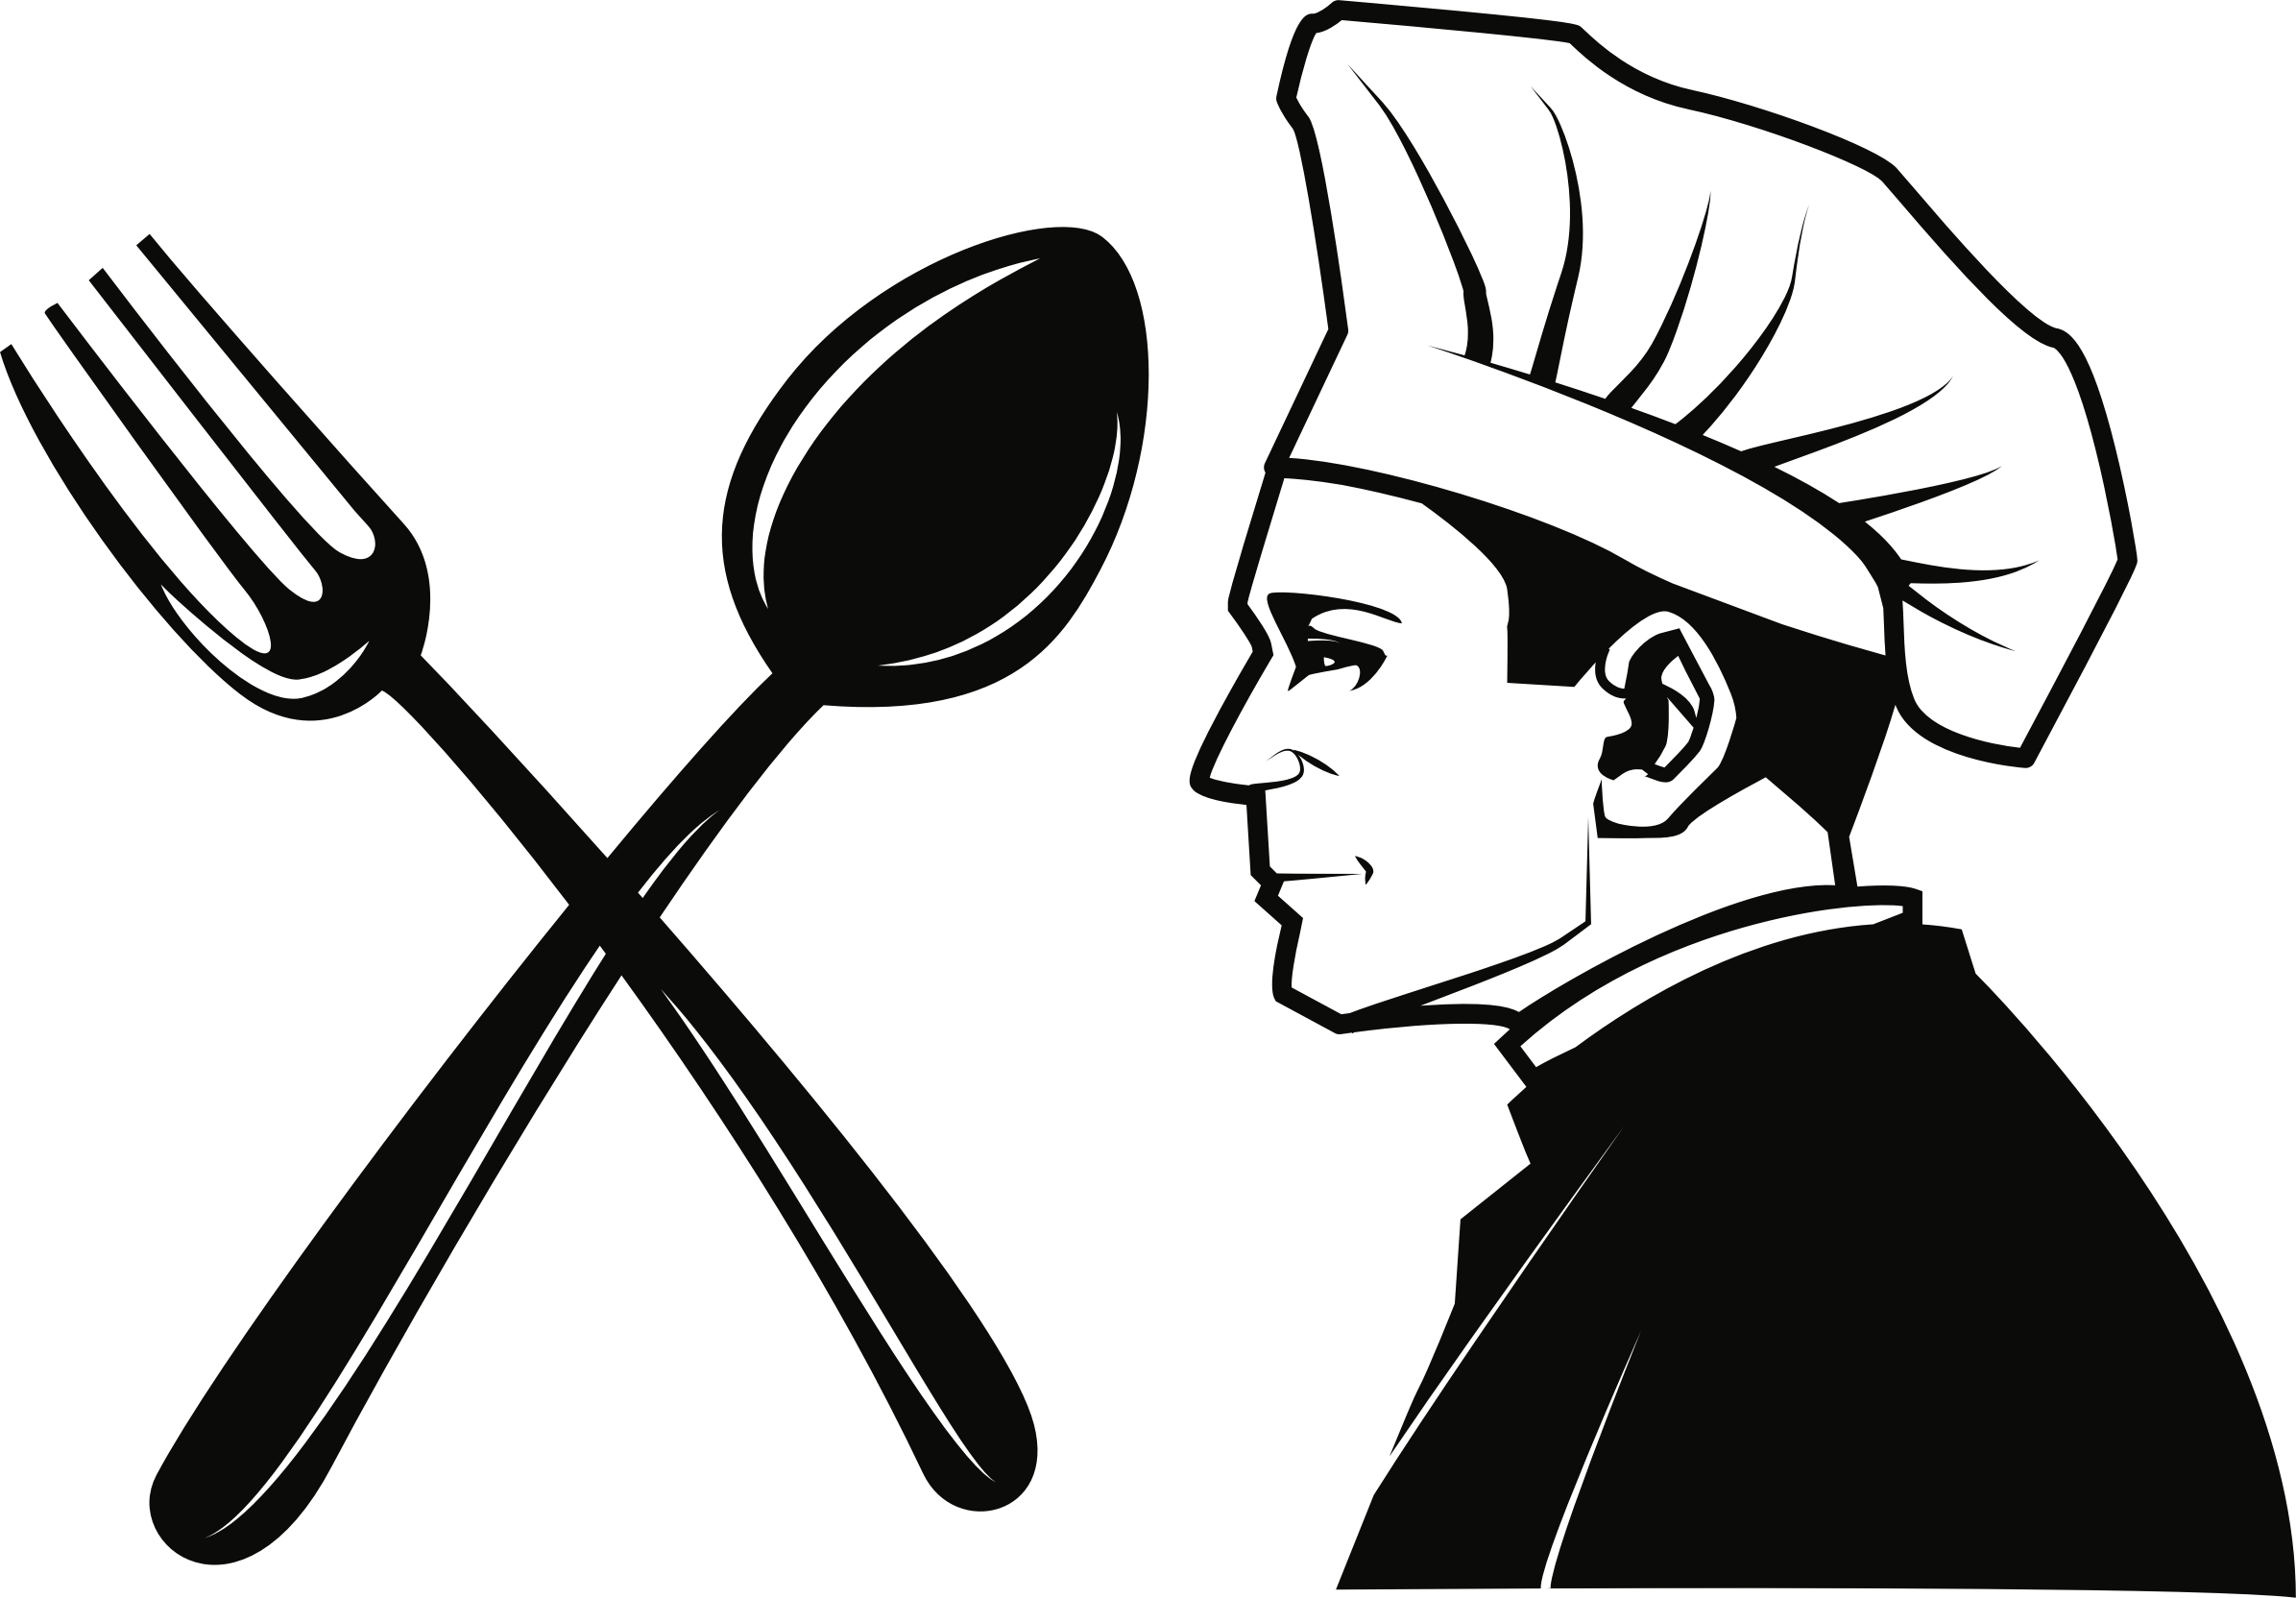 clip art royalty free download Public domain chef fork. Catering clipart